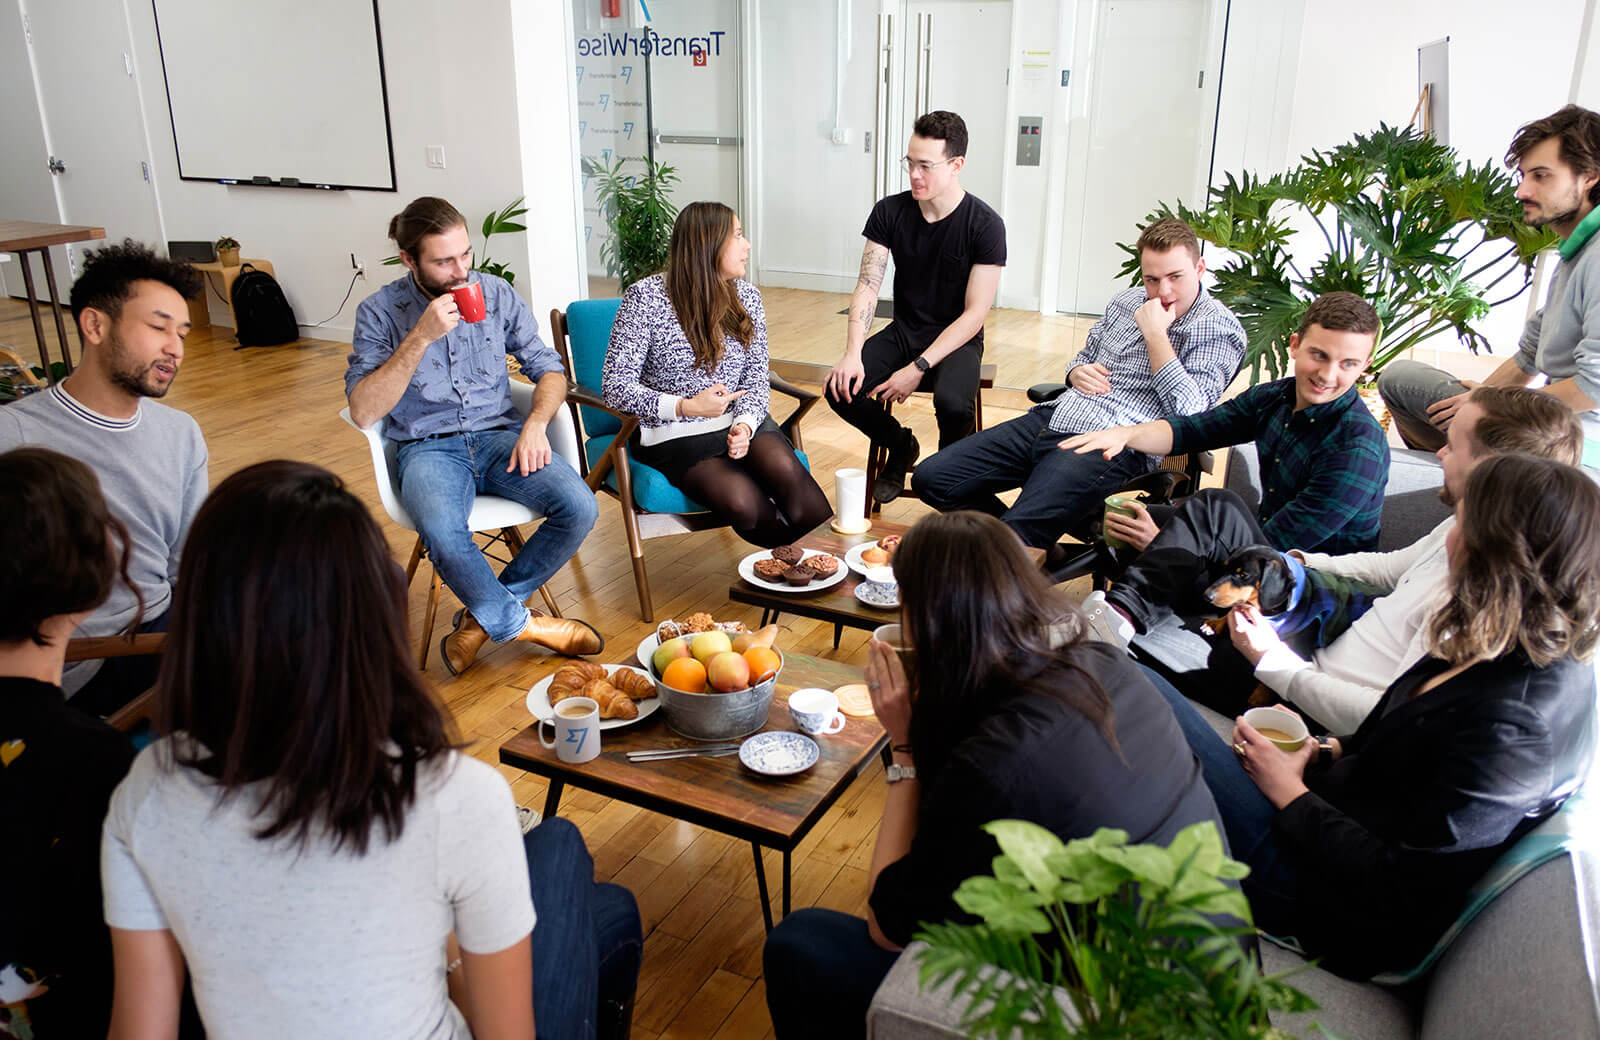 global-workplace-practices-fika-1